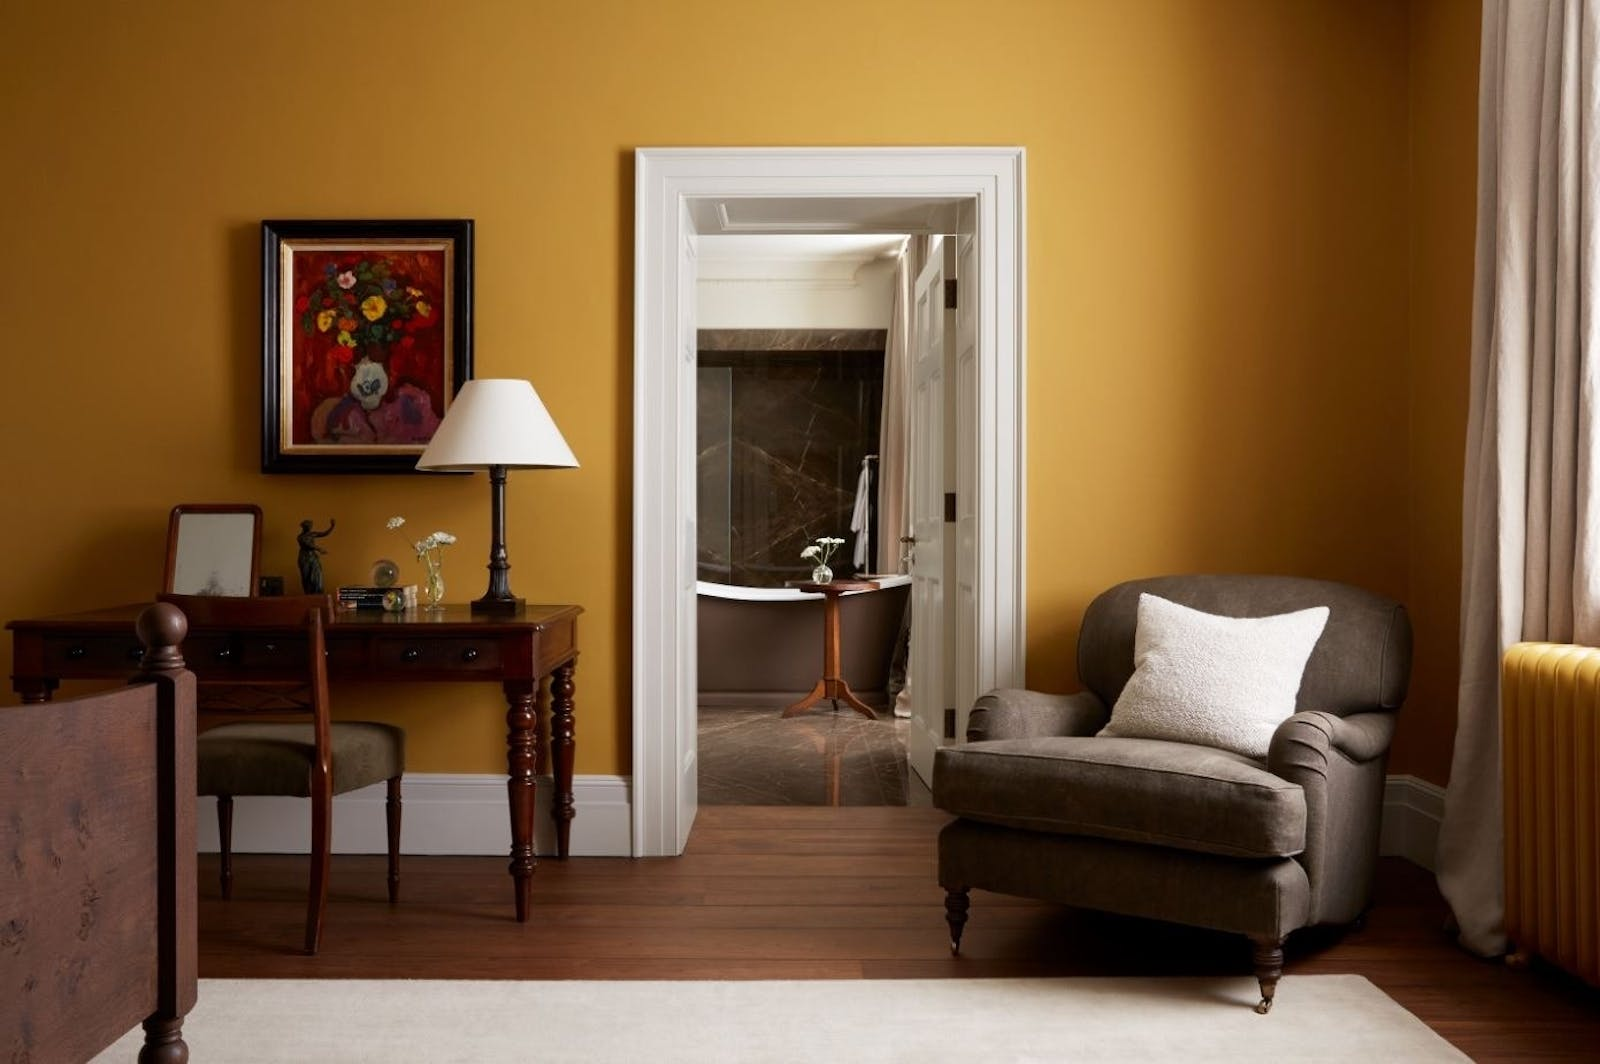 Signature Room Ochre at Heckfield Place, Hampshire